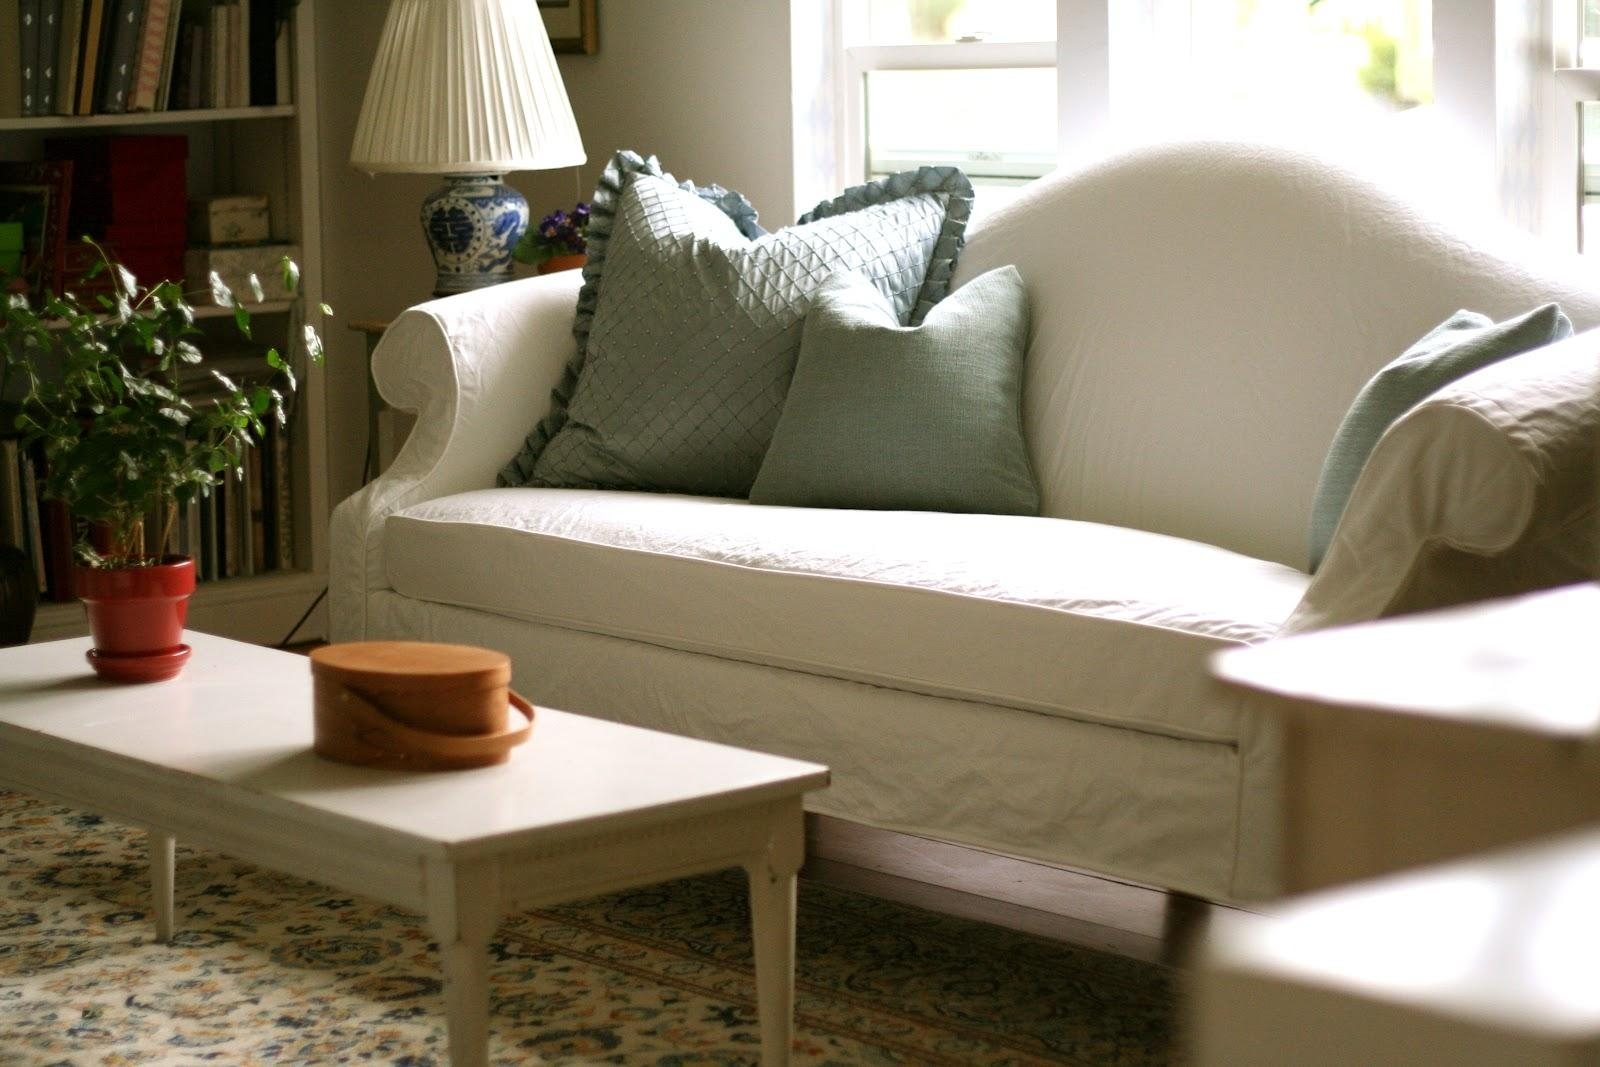 Custom Slipcoversshelley: White Camel Back Couch Intended For Camelback Sofa Slipcovers (View 1 of 19)